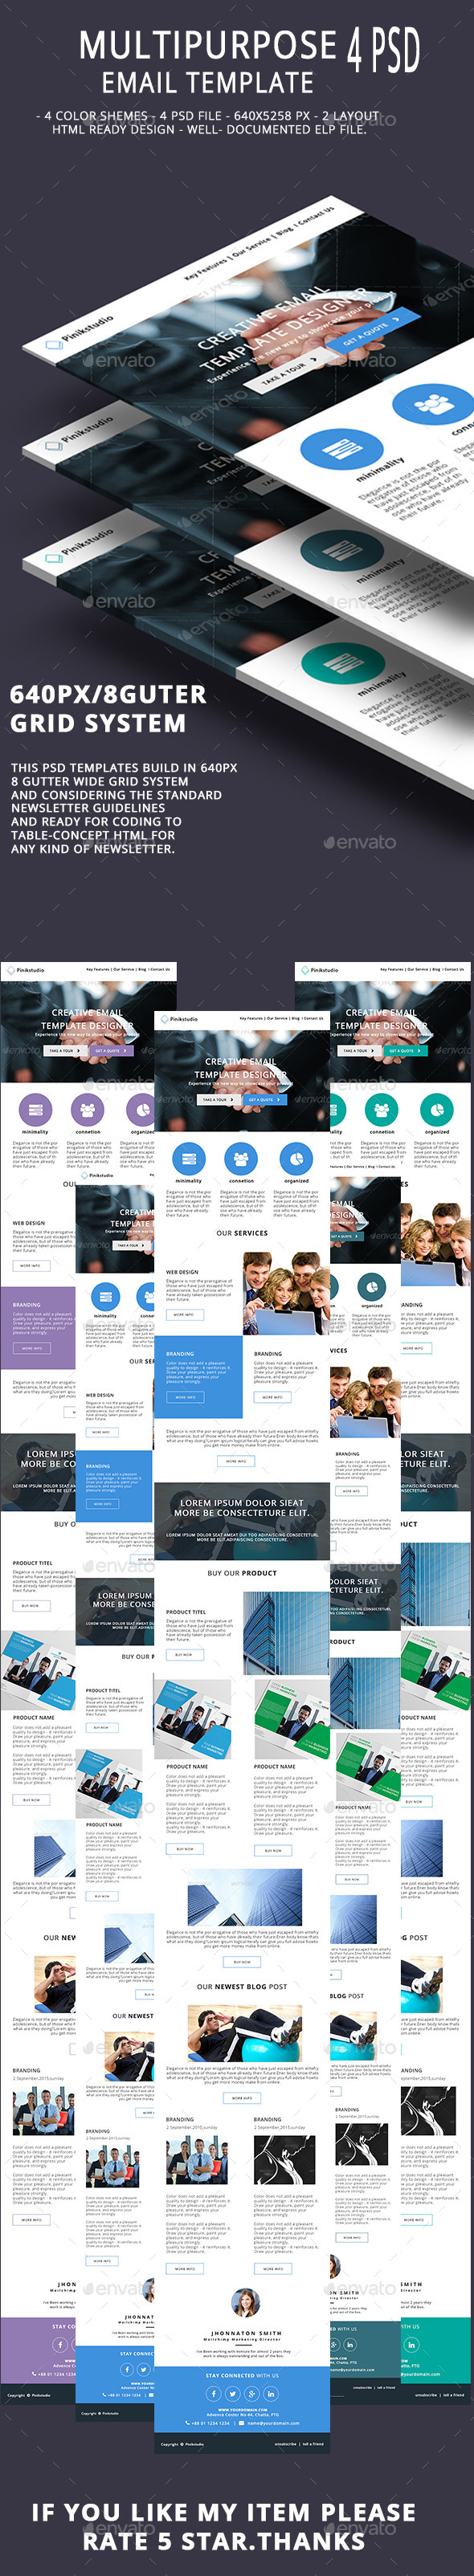 Multipurpose Email Template V5 - E-newsletters Web Elements